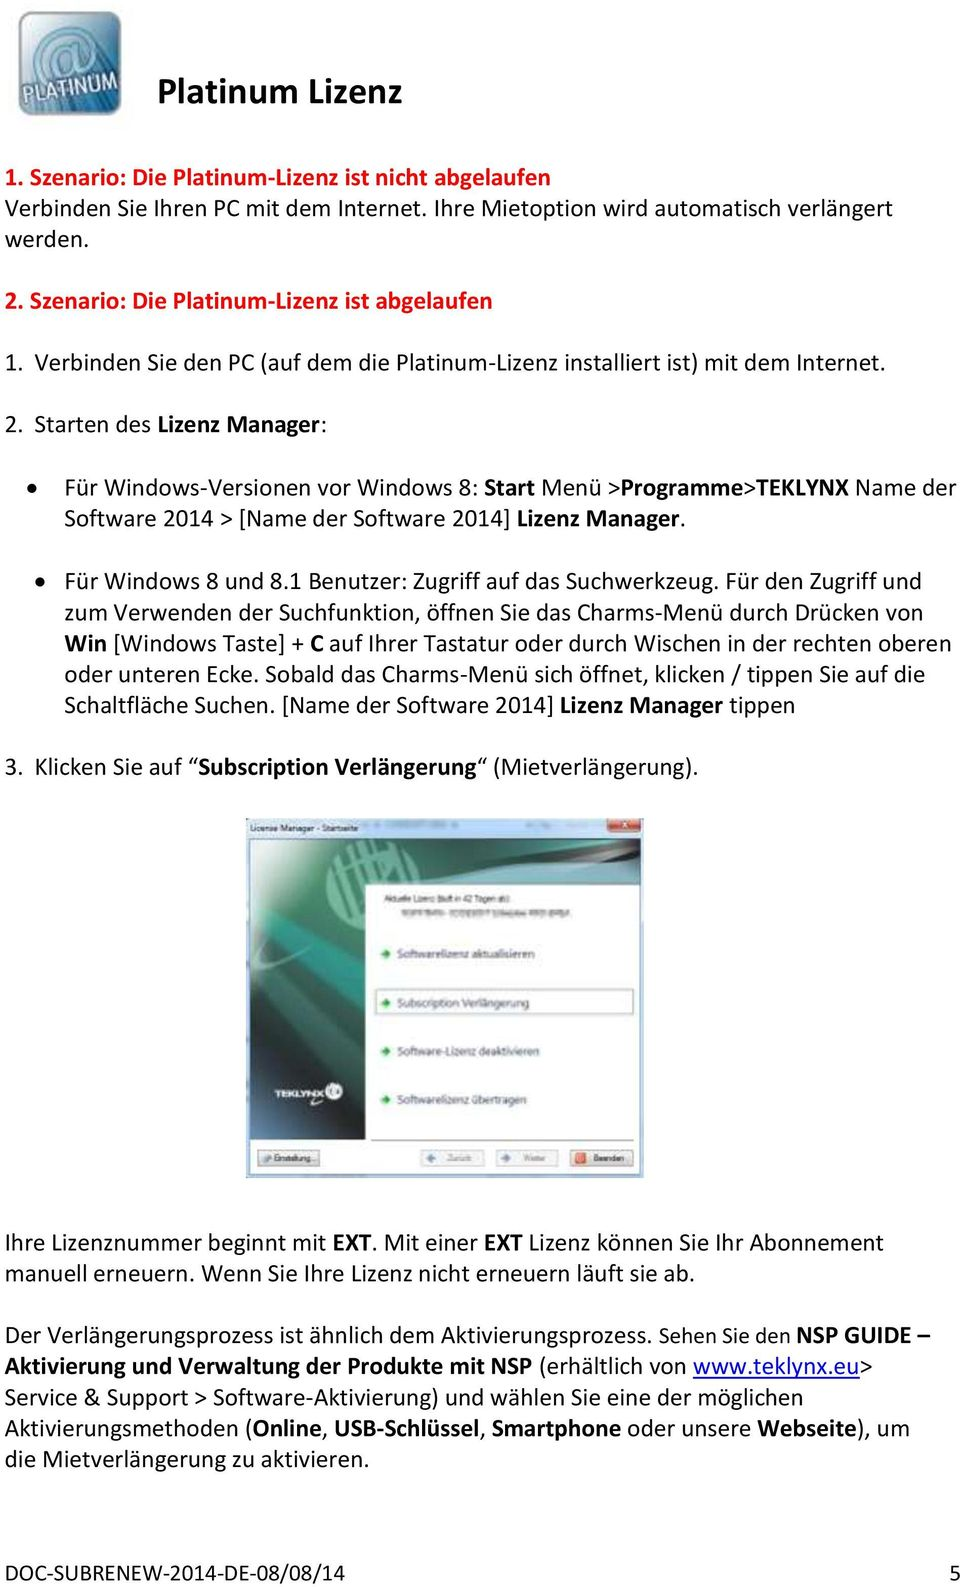 Starten des Lizenz Manager: Für Windows-Versionen vor Windows 8: Start Menü >Programme>TEKLYNX Name der Software 2014 > [Name der Software 2014] Lizenz Manager. Für Windows 8 und 8.